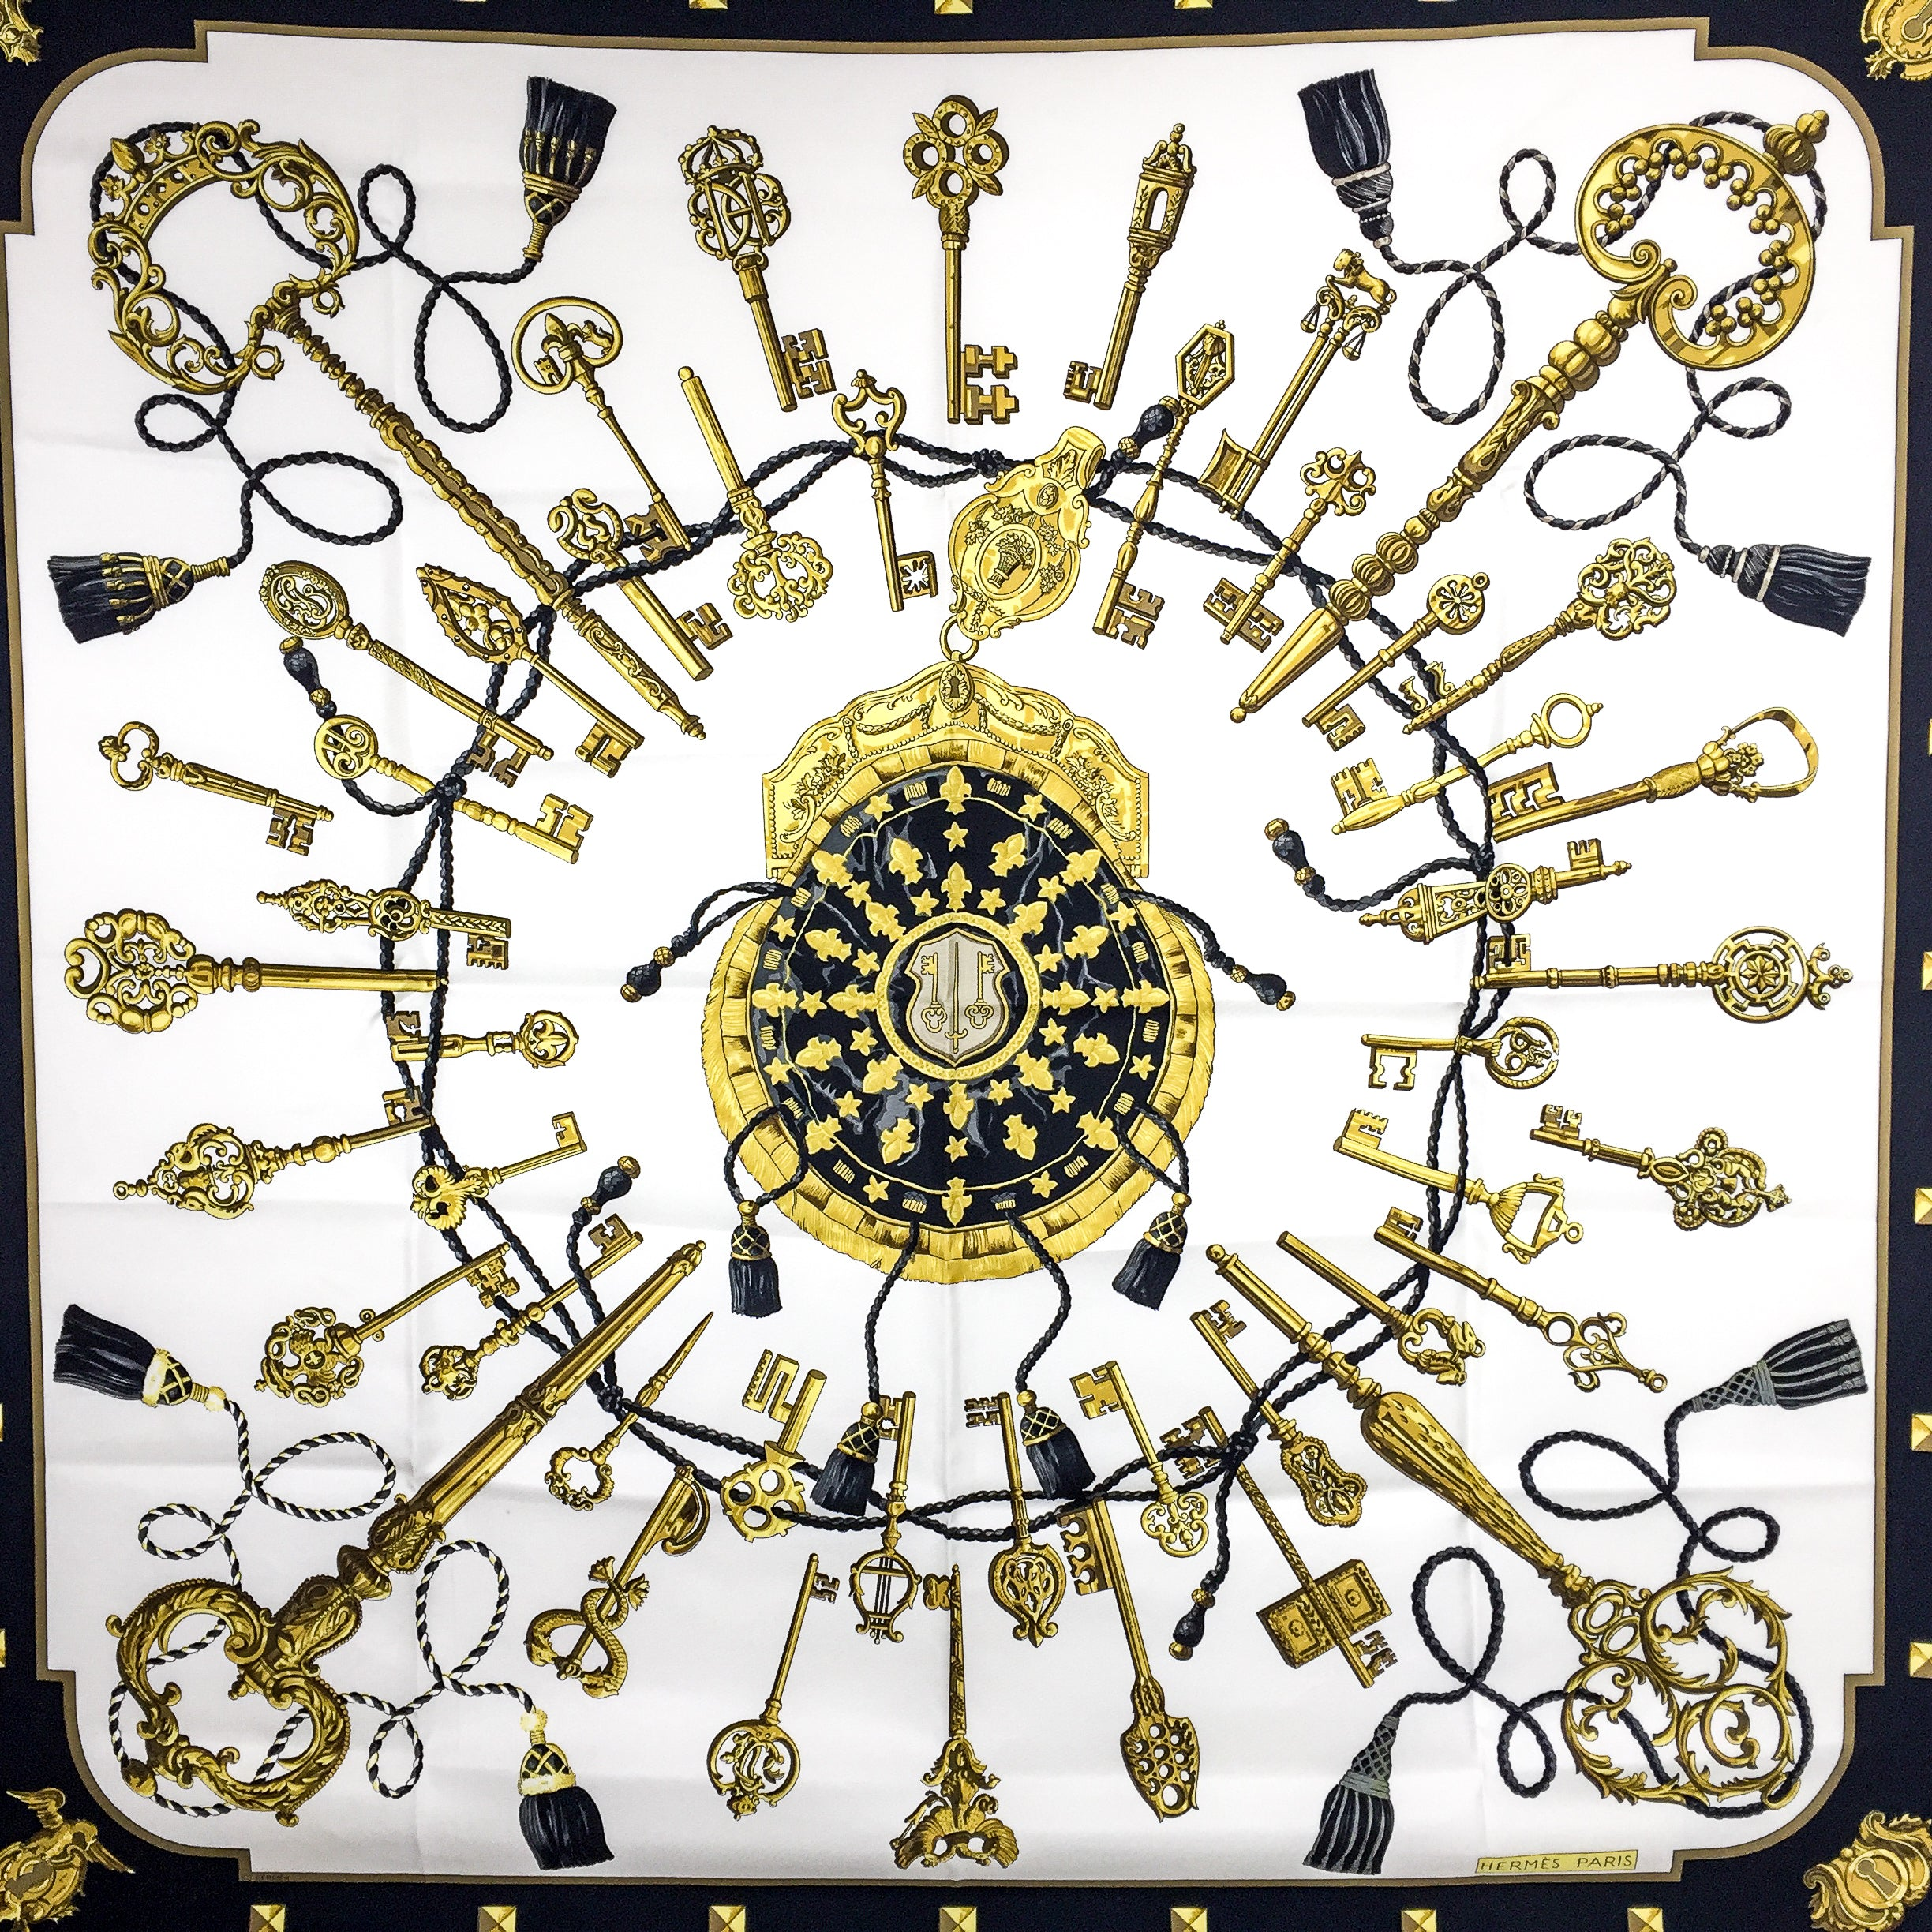 Les Cles Hermes Silk Scarf - a Must Have